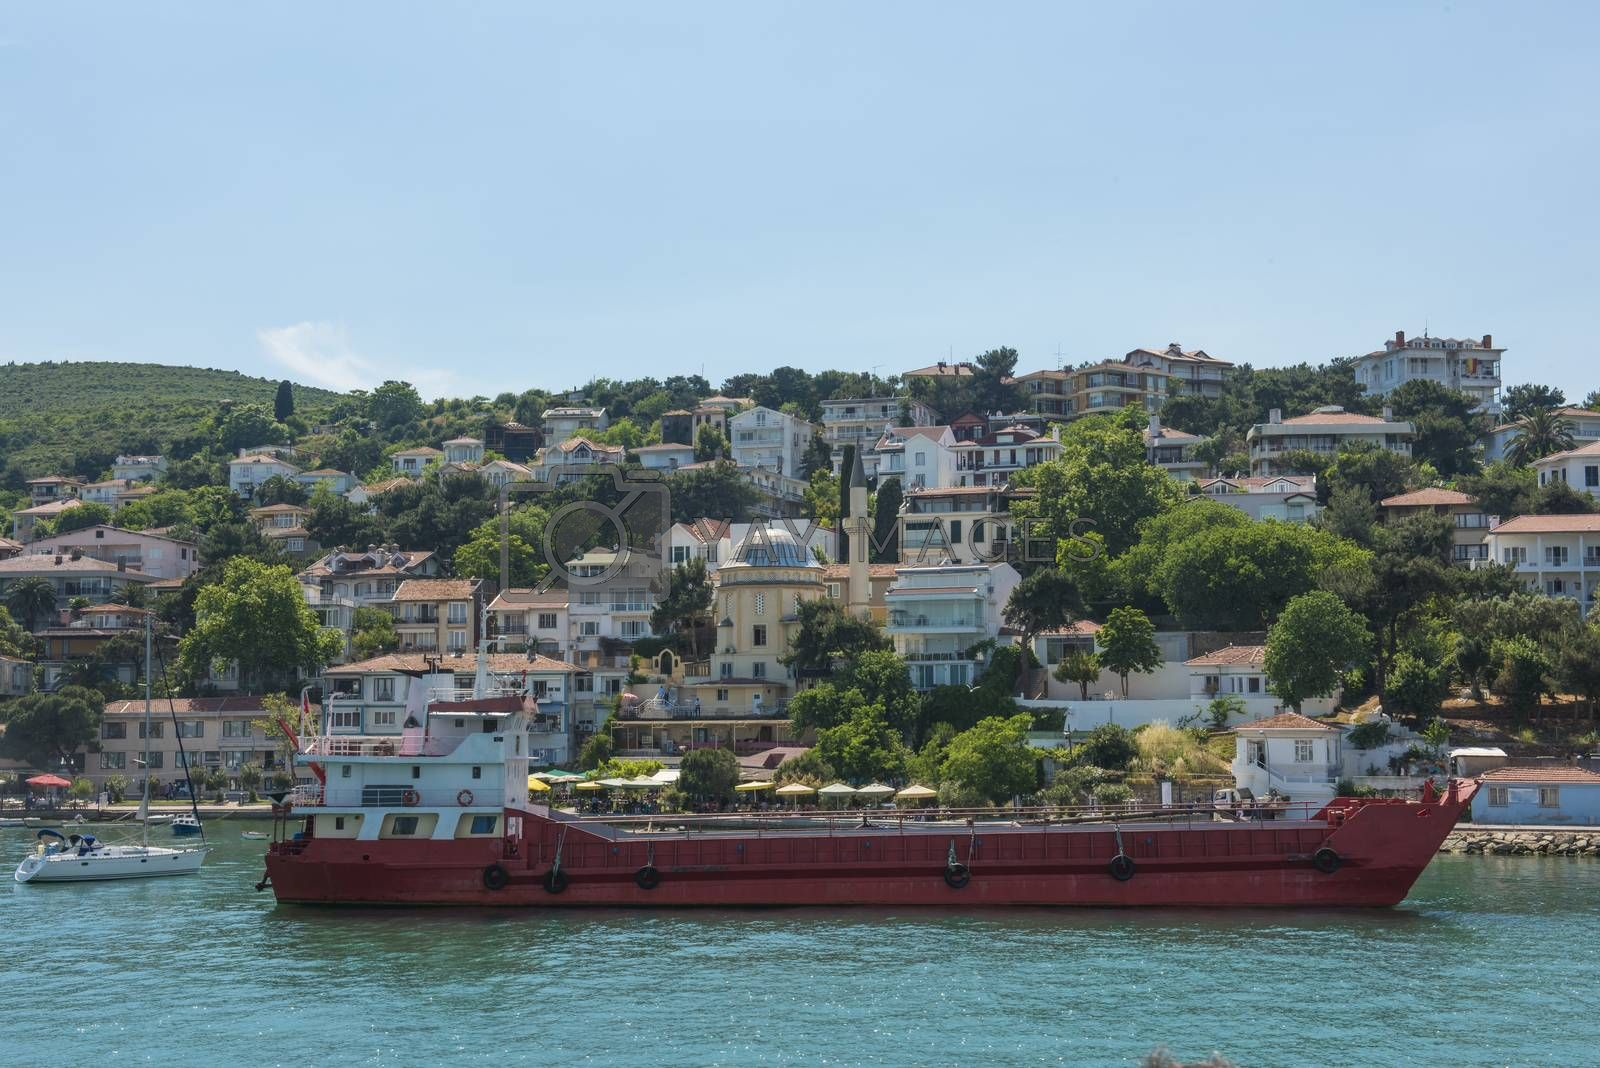 View of rural Princes Island of Kinaliada hillside with luxury residential housing and cargo ship on coast